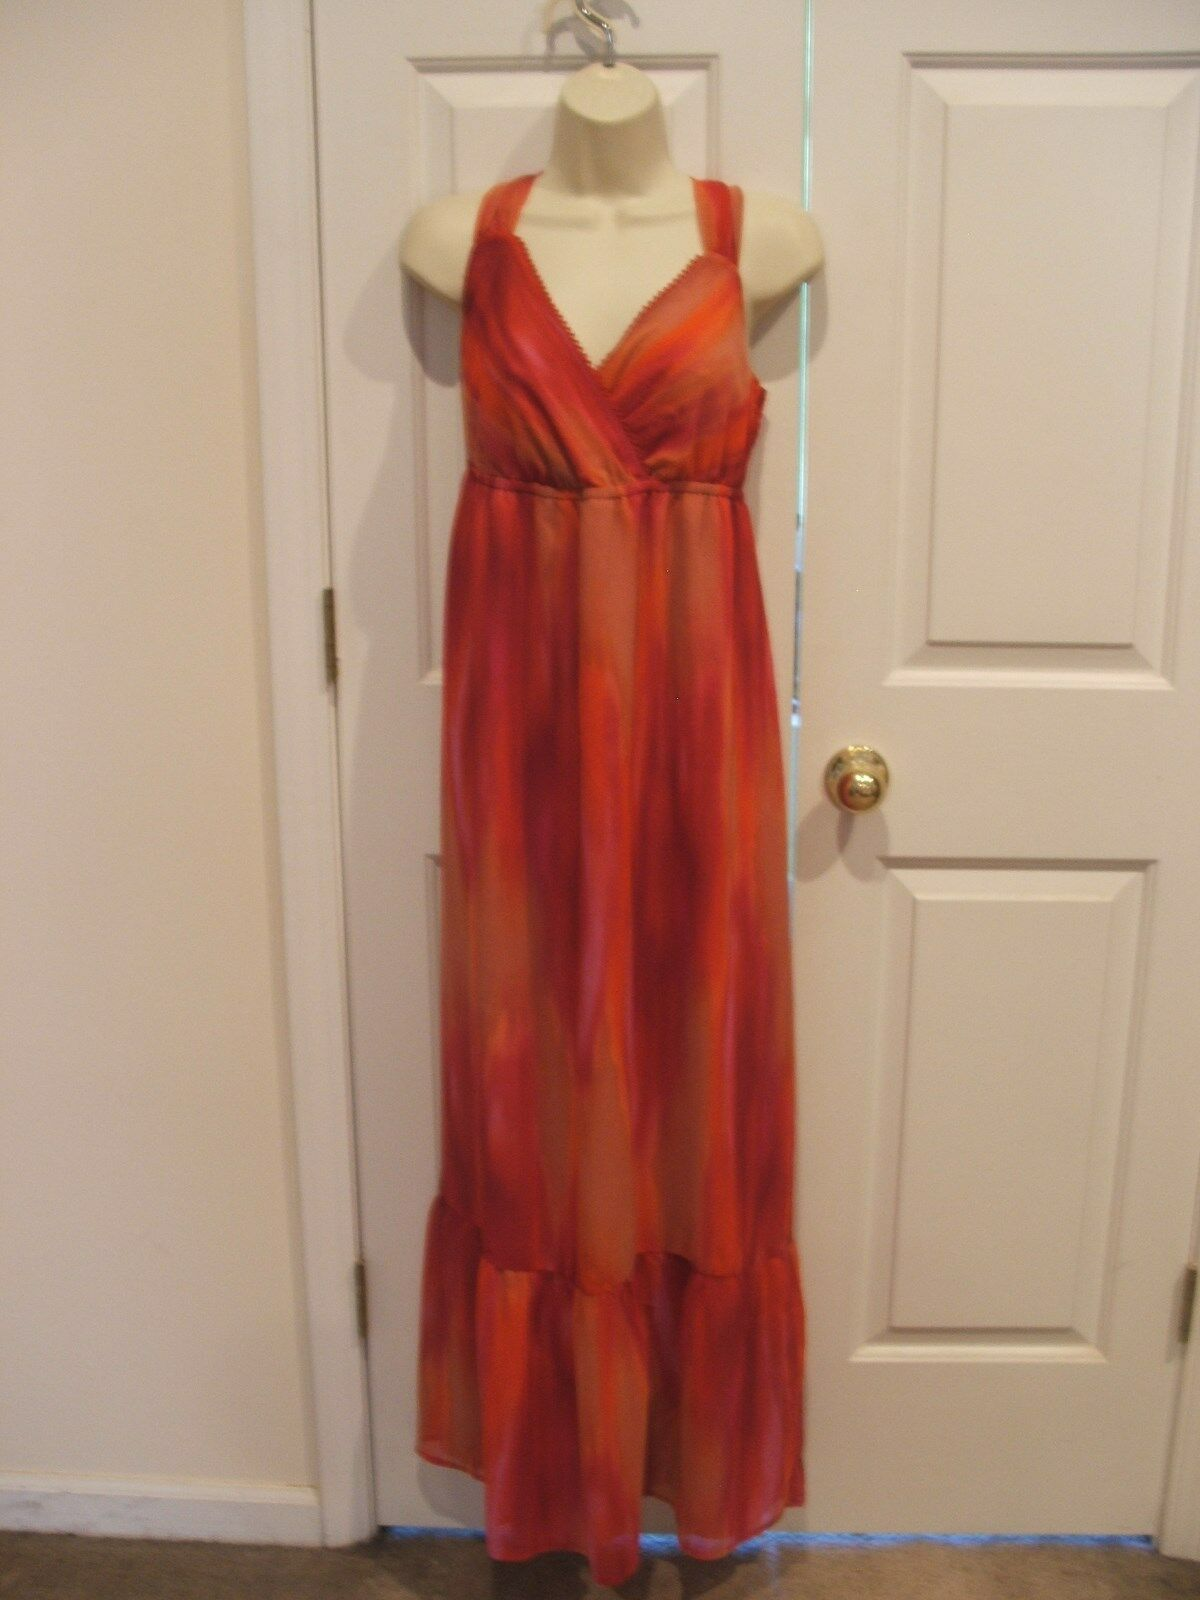 b6b163b25a0983 NWT a.n.a Streak Maxi Dress orange Red Size LARGE 14-16 Pink color ...